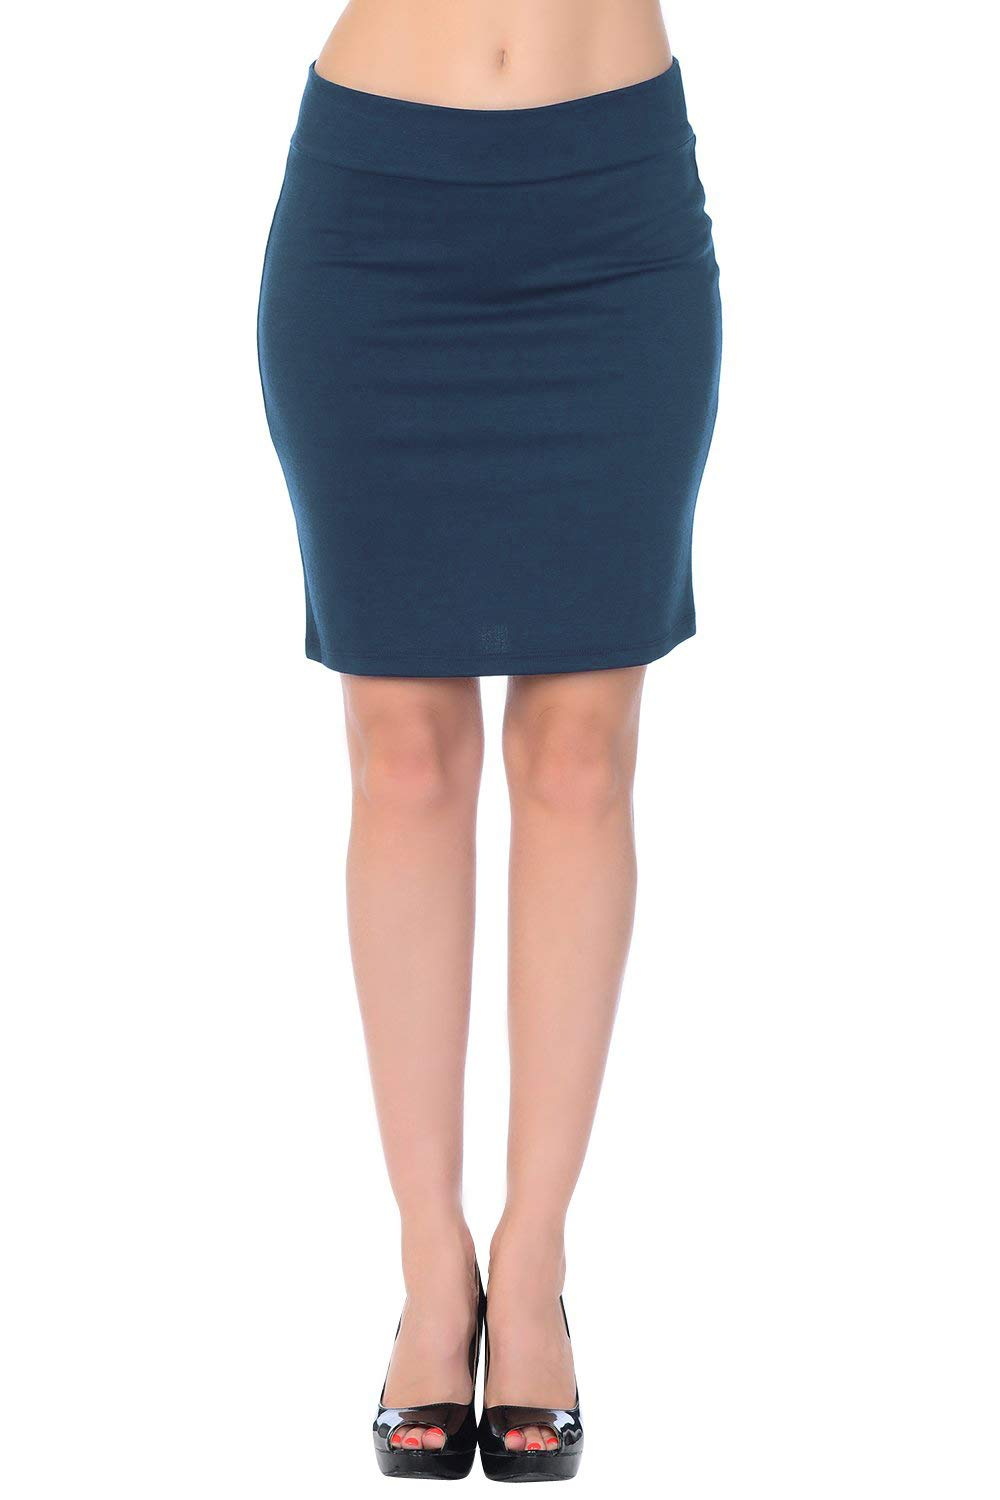 Jubilee Couture Womens Above Knee Short Mini Pencil Skirt Made in USA 14JCS5007